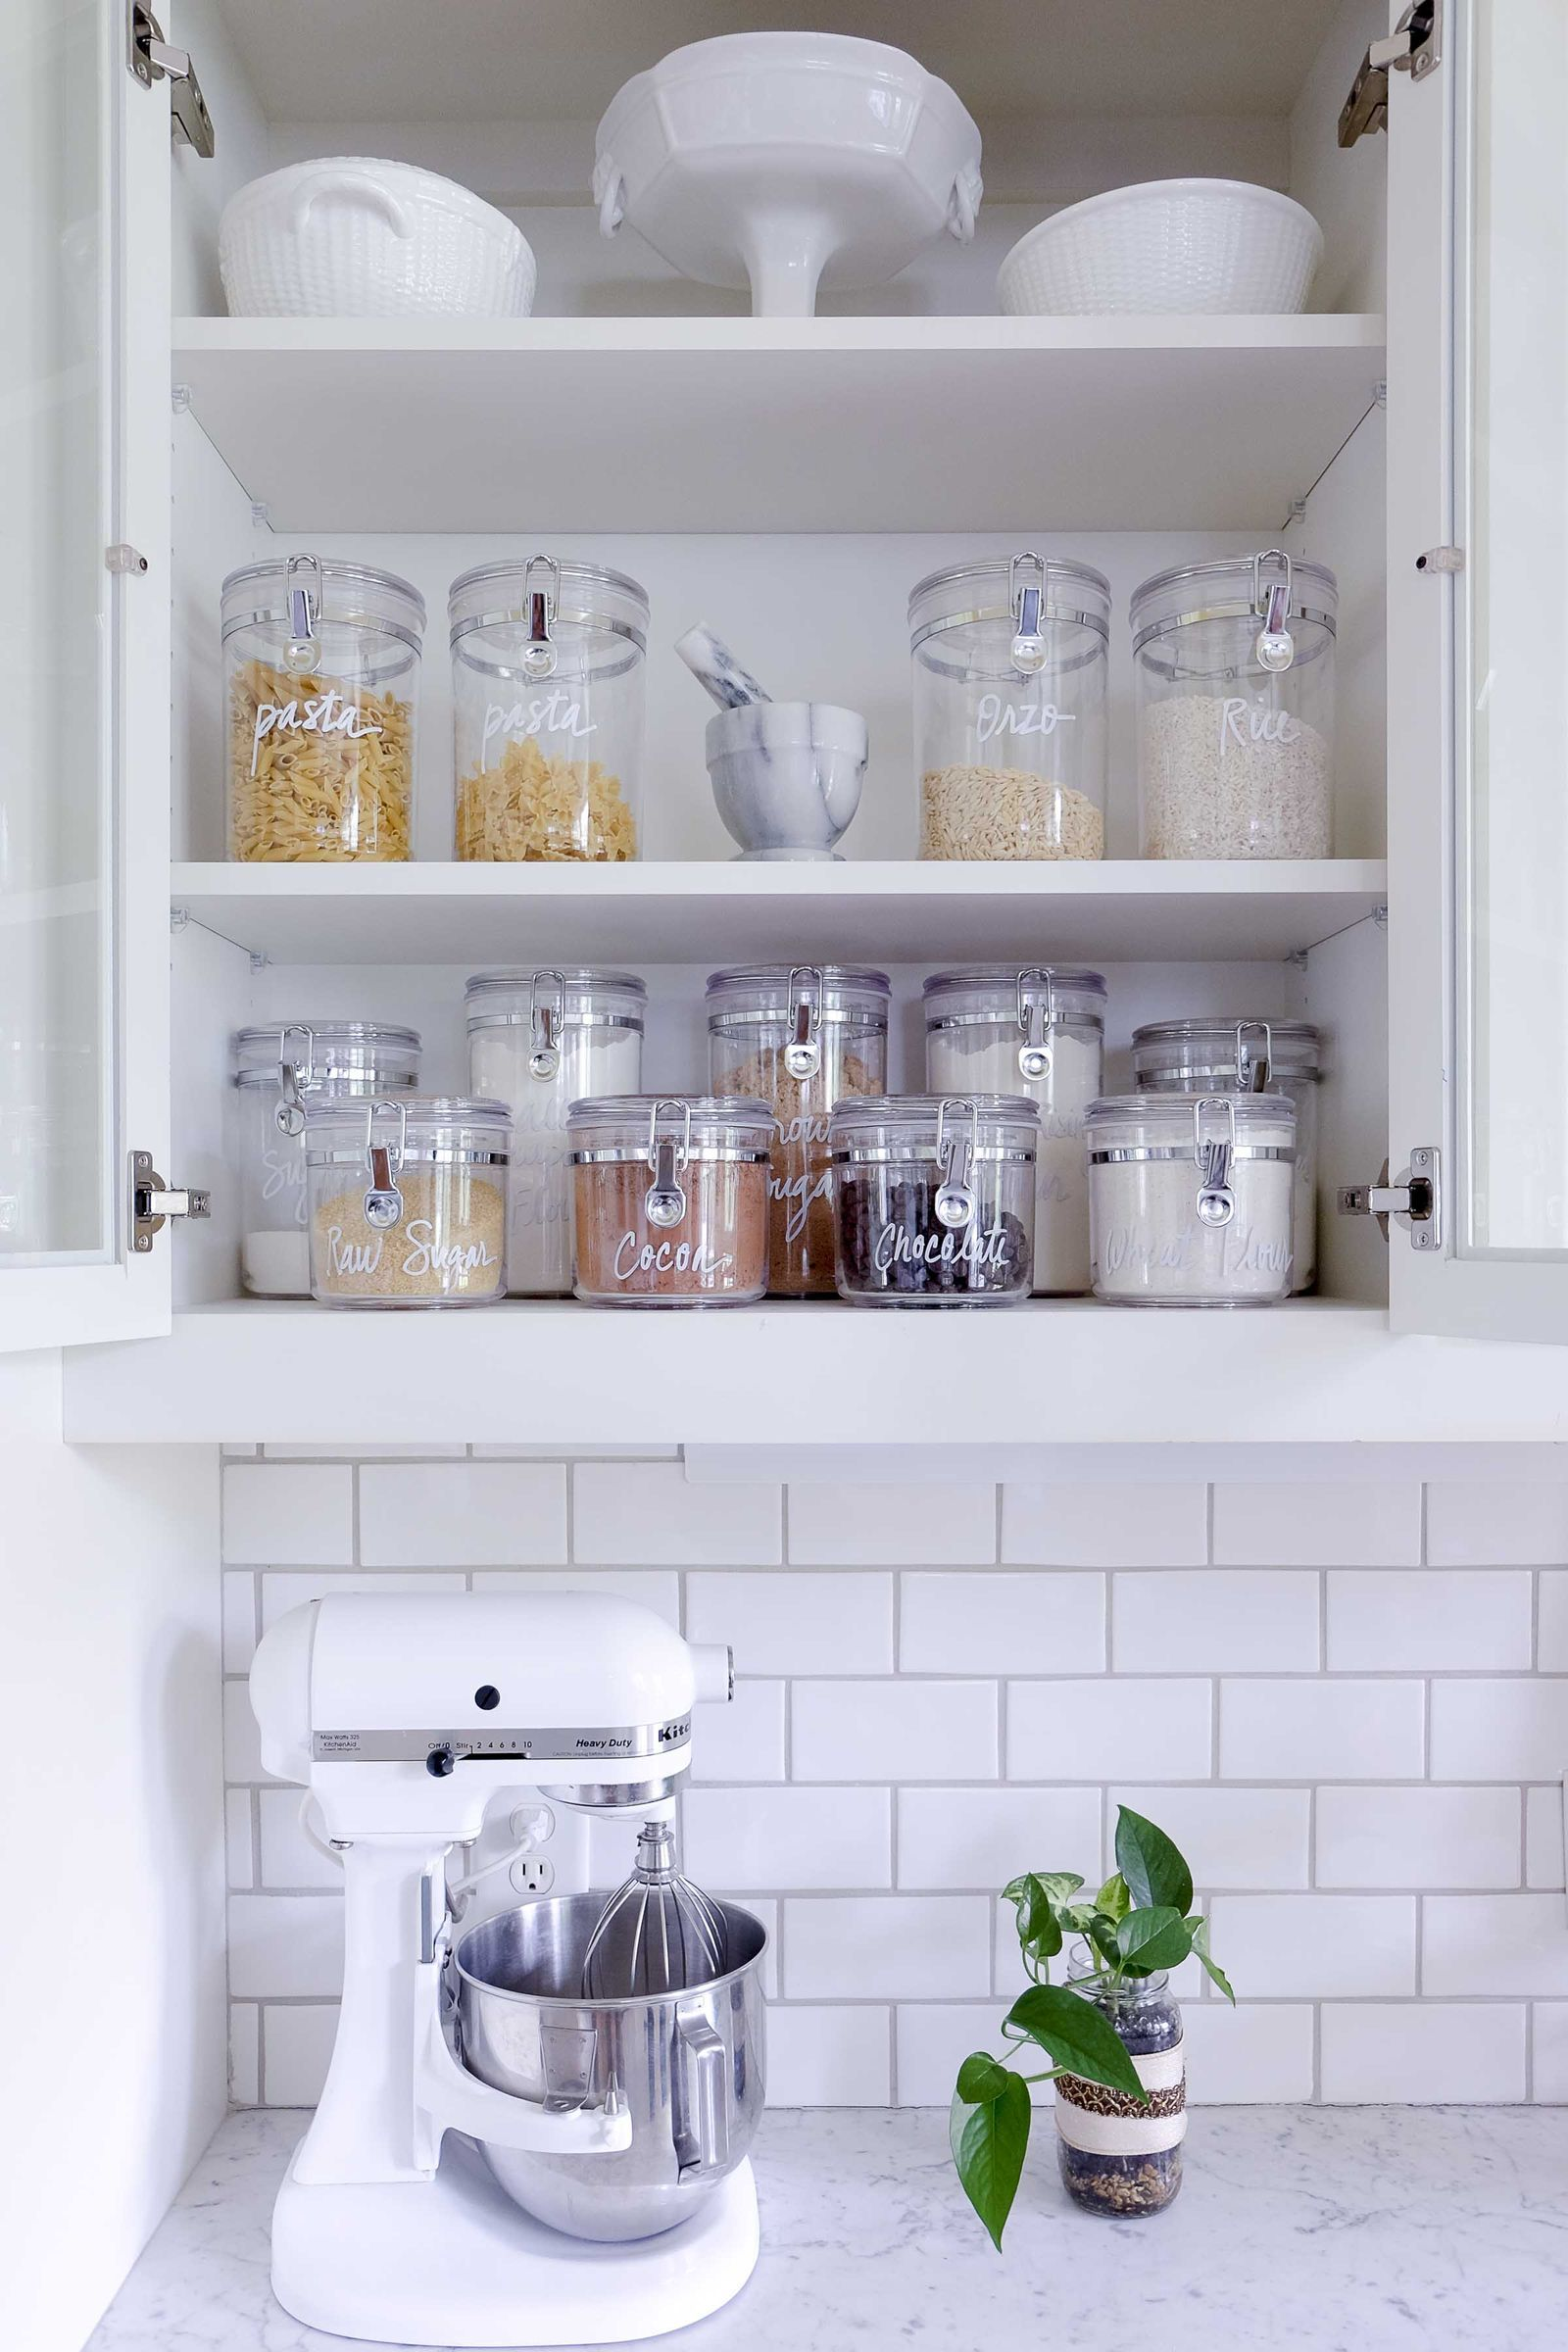 this is the home edit s guide to organizing your kitchen in 2020 the home edit home decor on kitchen decor organization id=86328